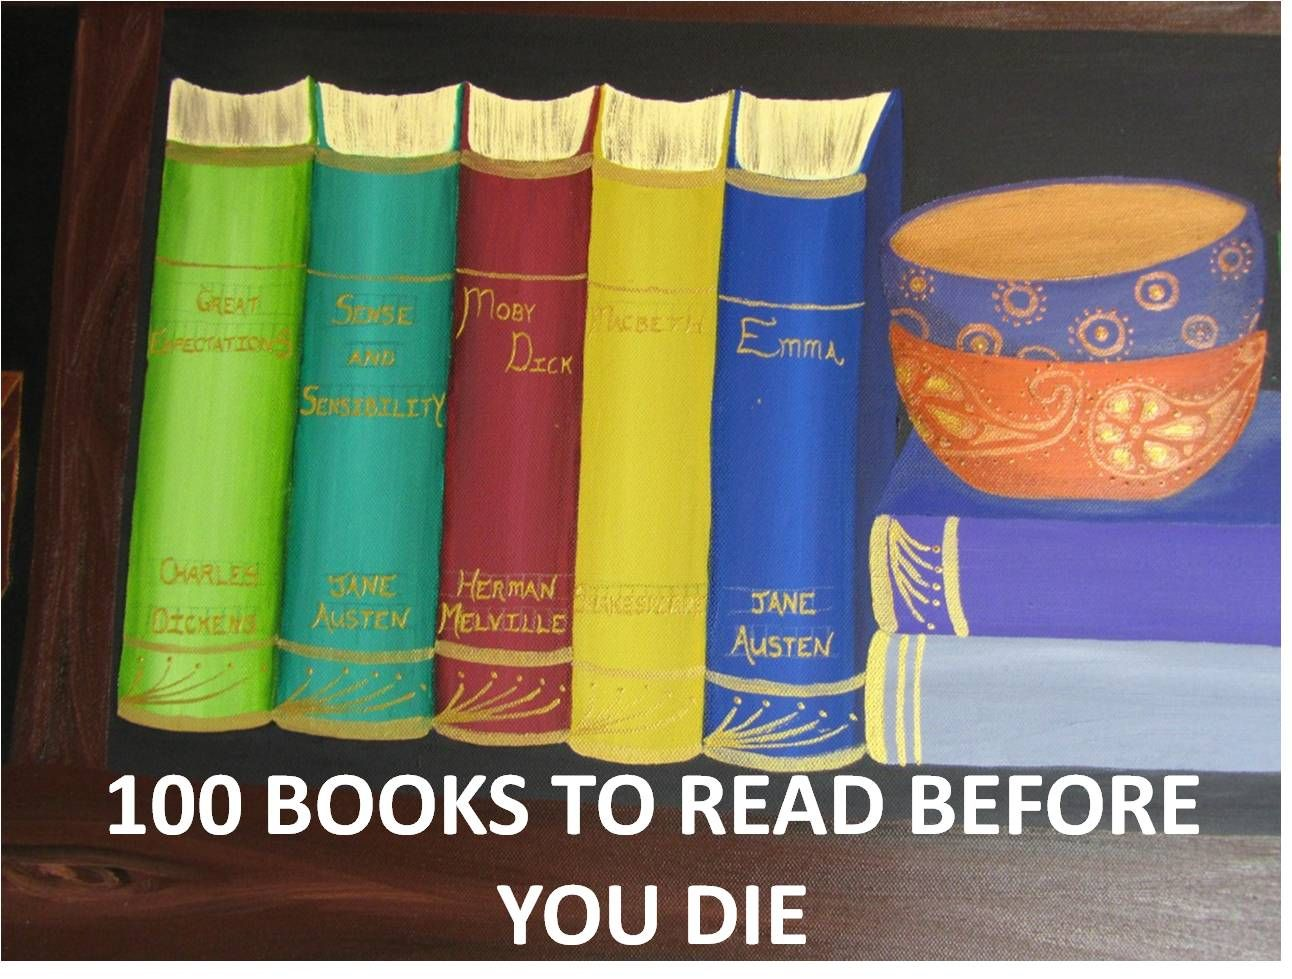 Bbc S List Of 100 Books To Read Before You Die I M Busy With To